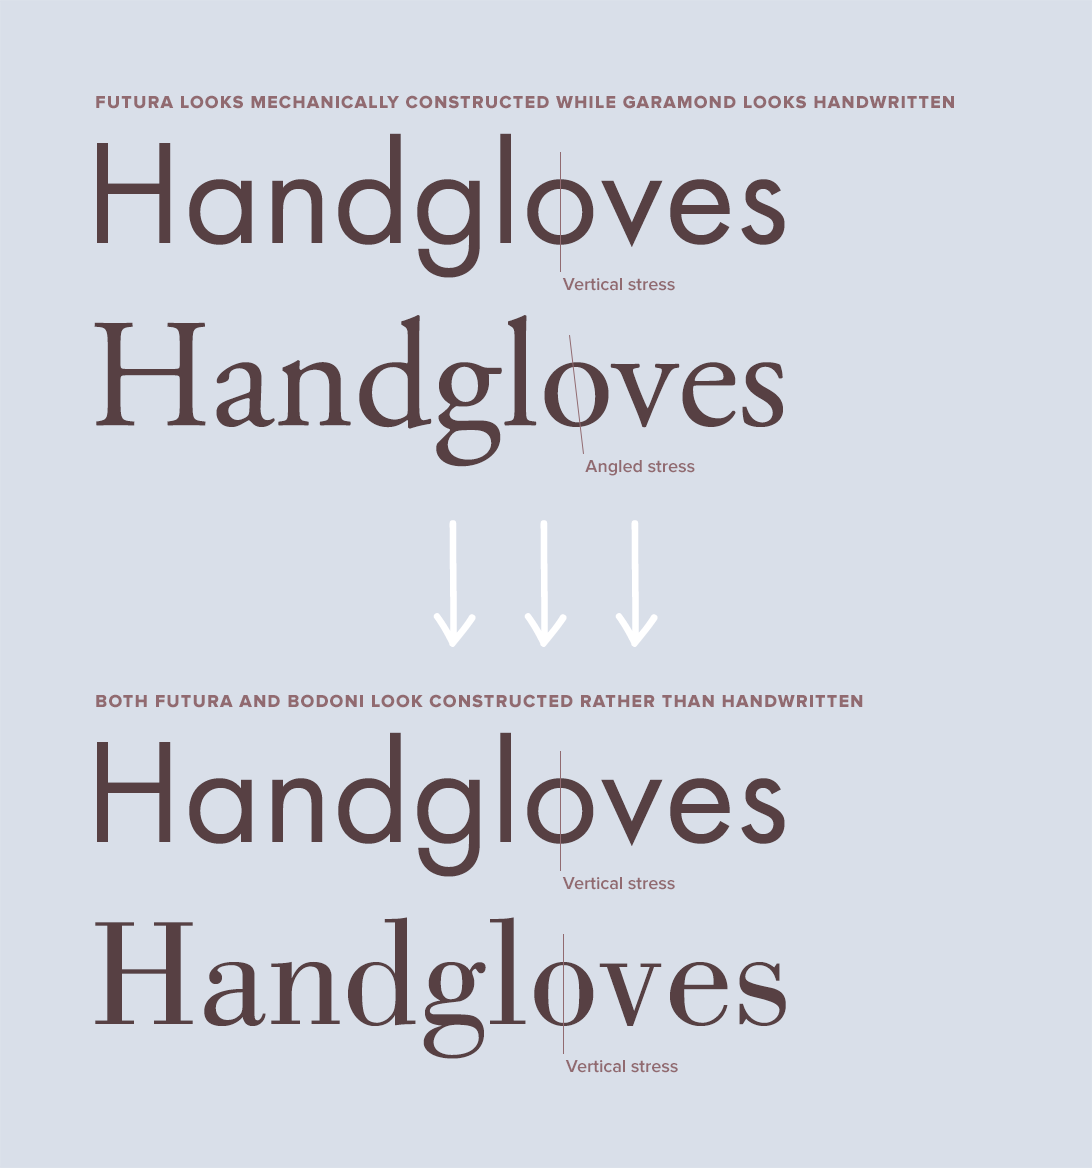 Futura paired with Garamond vs Futura paired with Bodoni